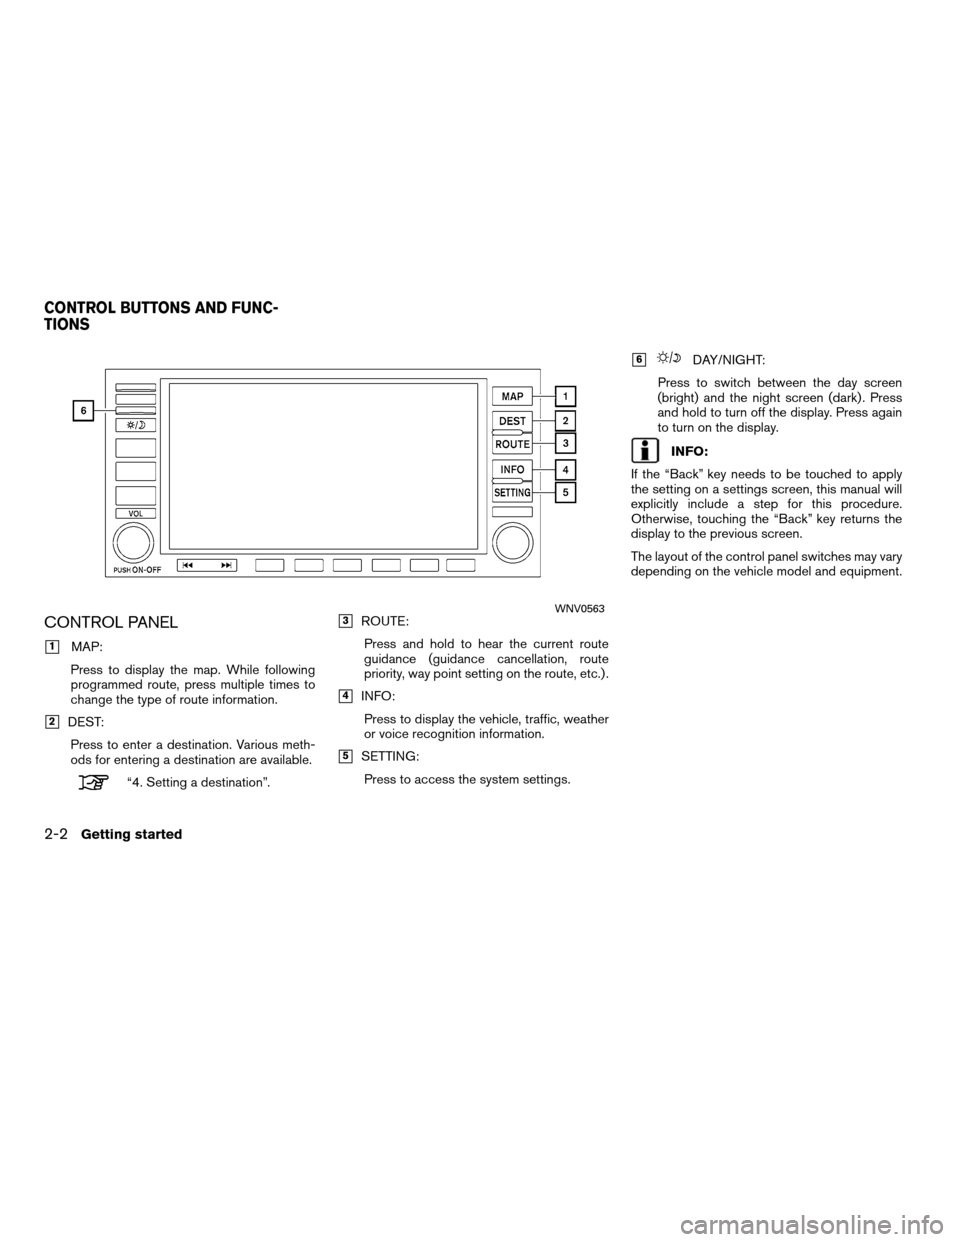 NISSAN ALTIMA HYBRID 2011 L32A / 4.G Navigation Manual, Page 10